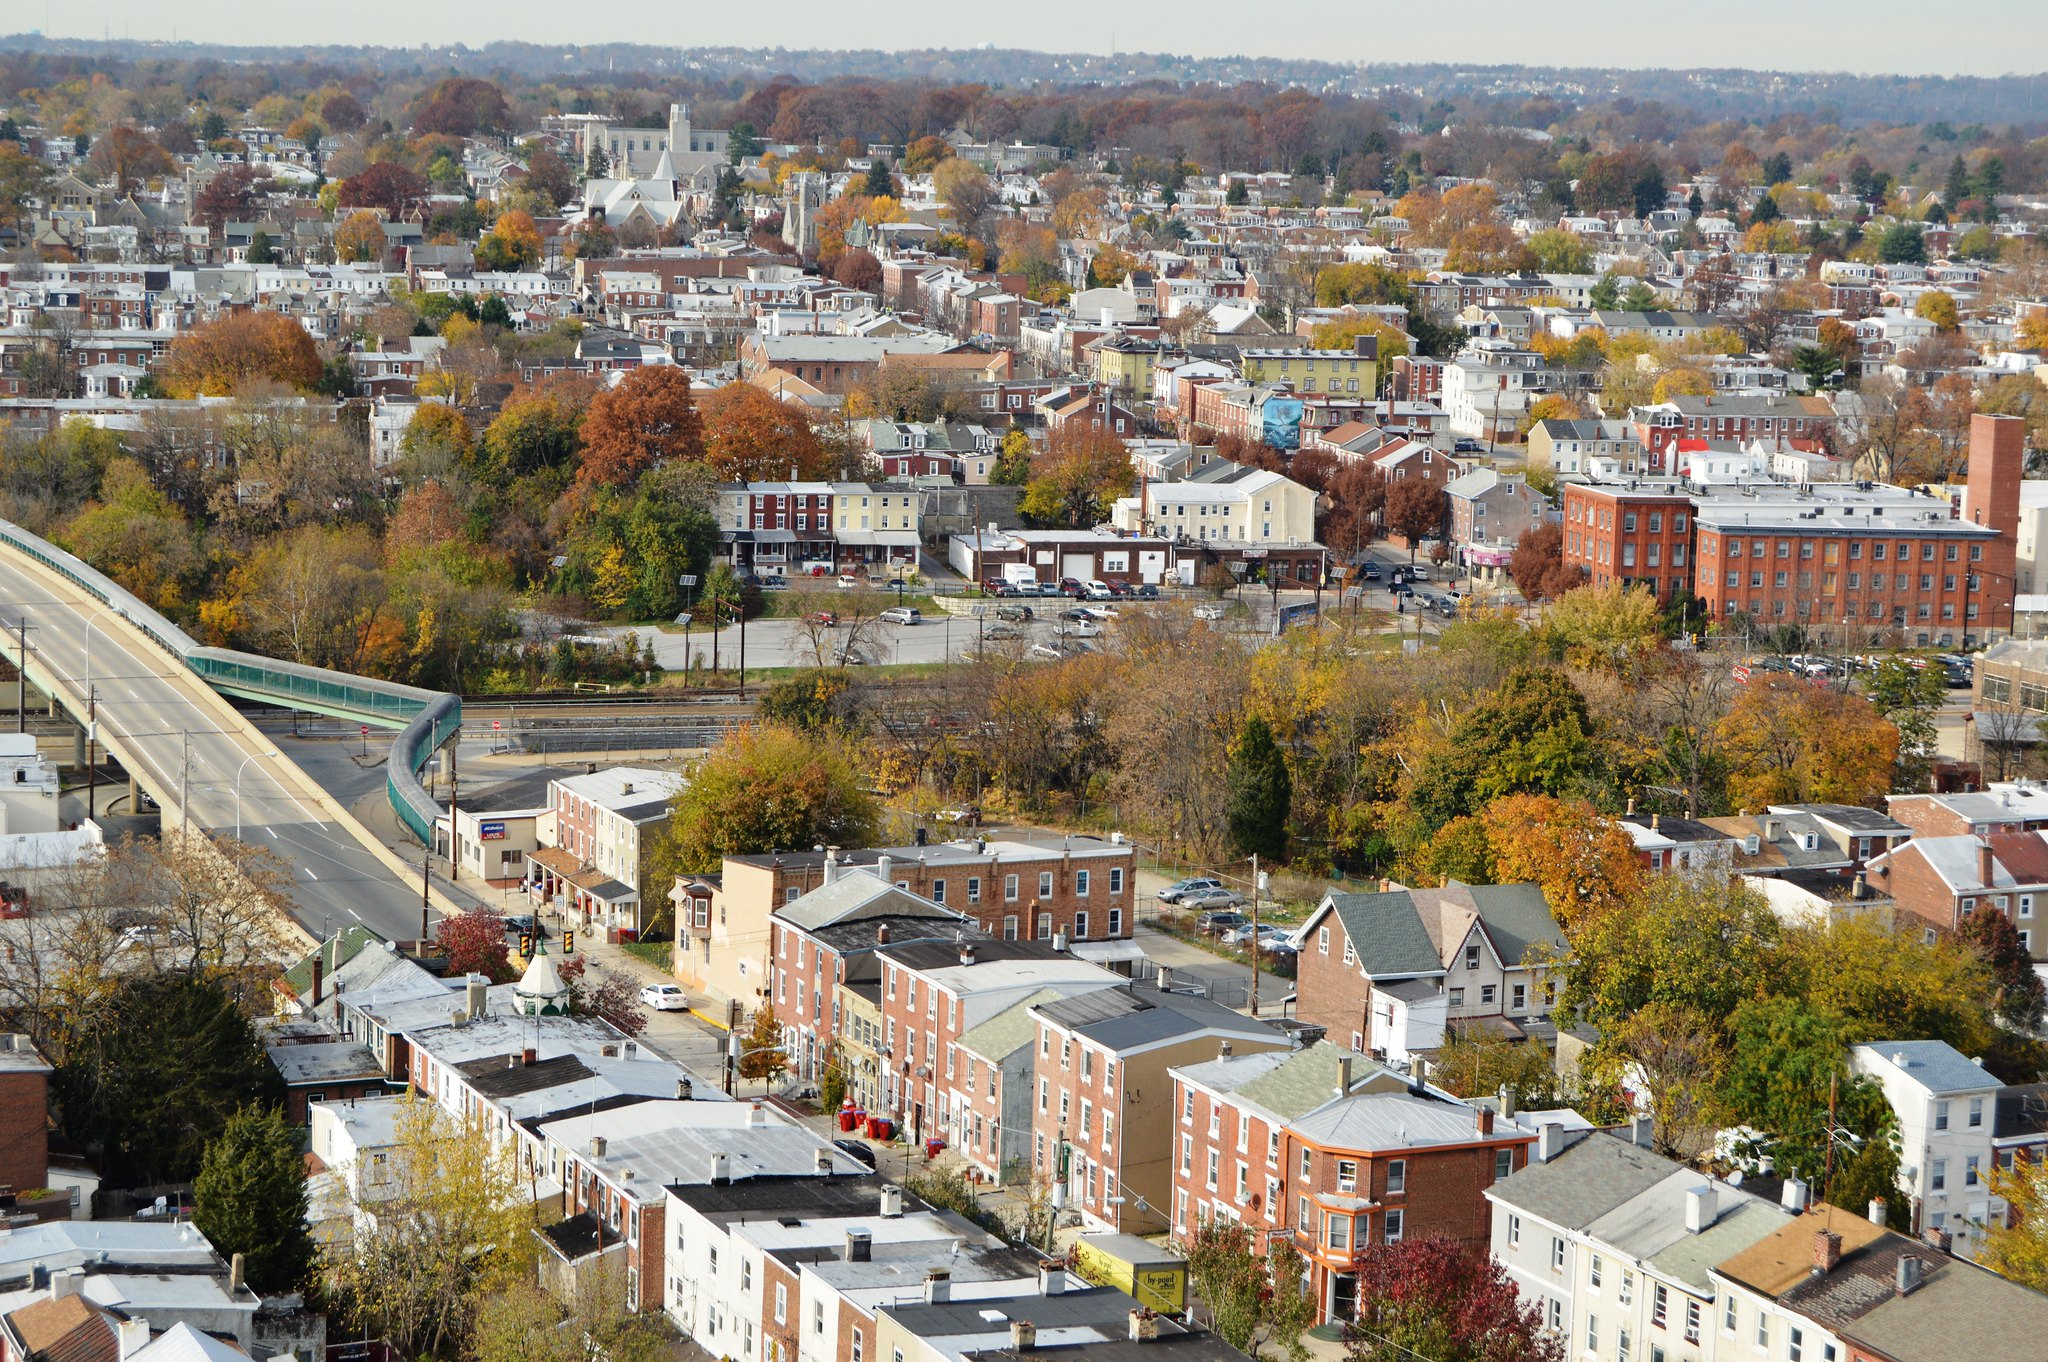 Aerial shot of Norristown, PA